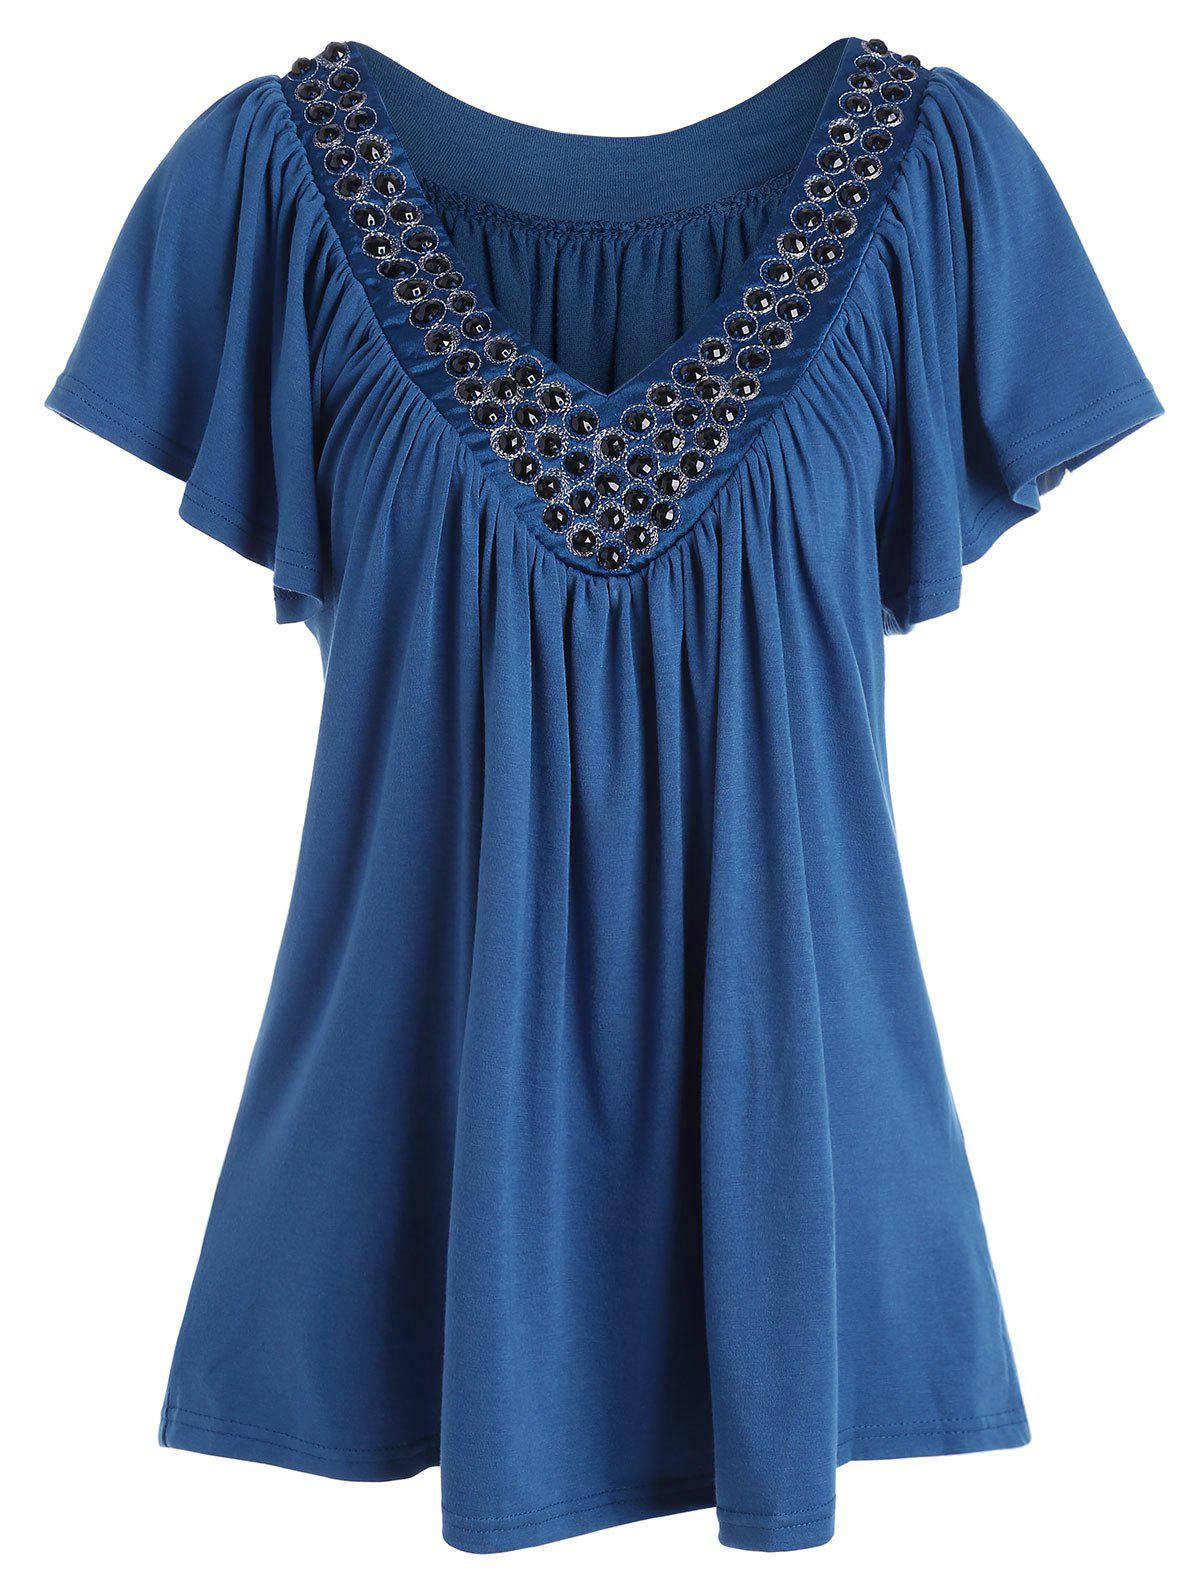 V Neck Beaded Plus Size Top - Bleu canard 3XL